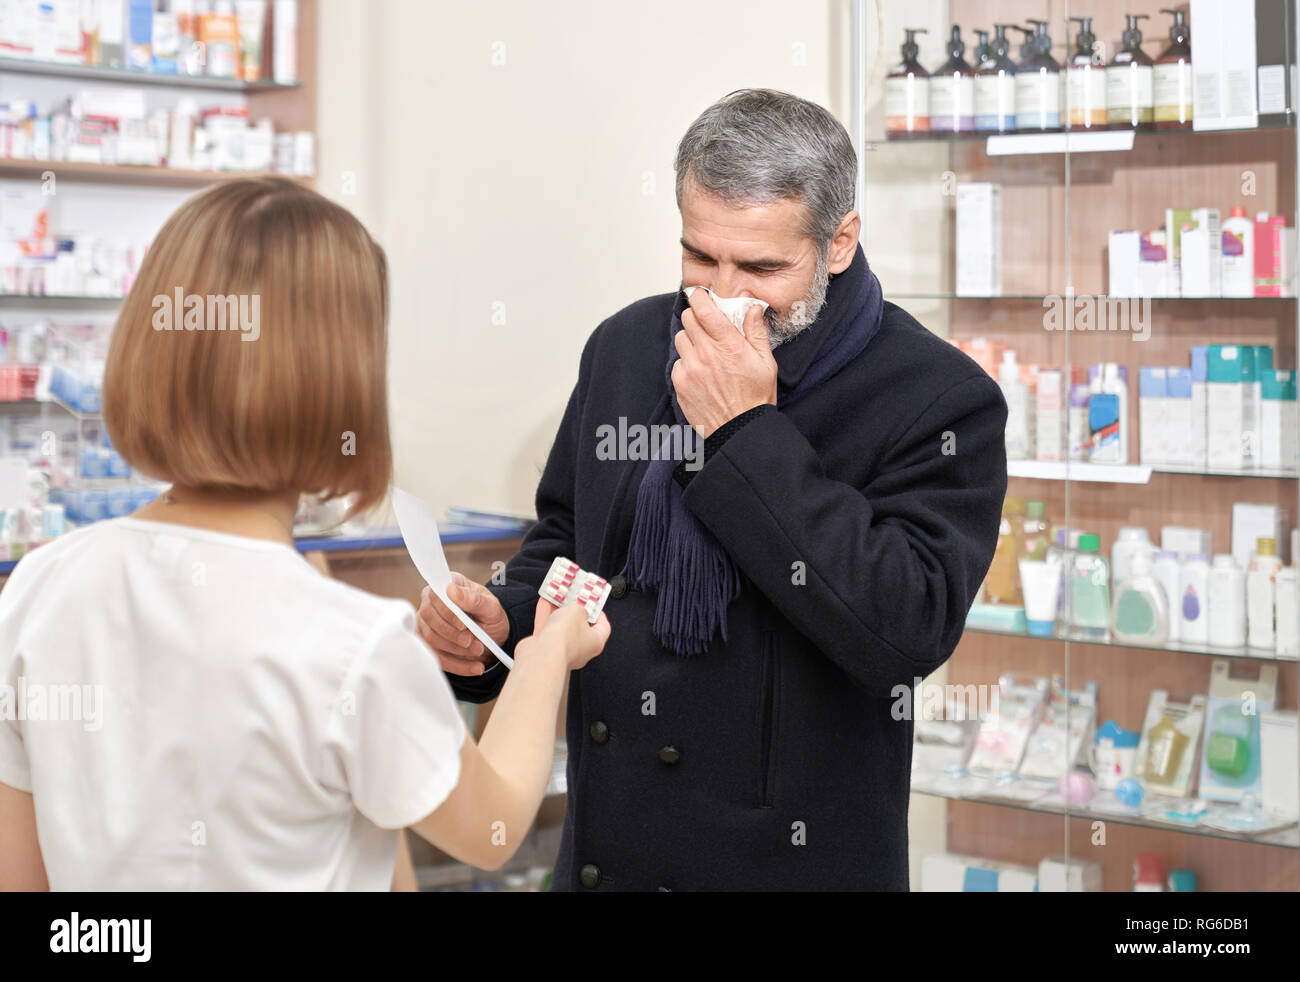 Sick man with flu consulting with pharmacist about medicaments. Female specialist in white coat offering blister pack of helpful pills. Man having blocked nose, blowing nose with tissue, coughing. - Stock Image